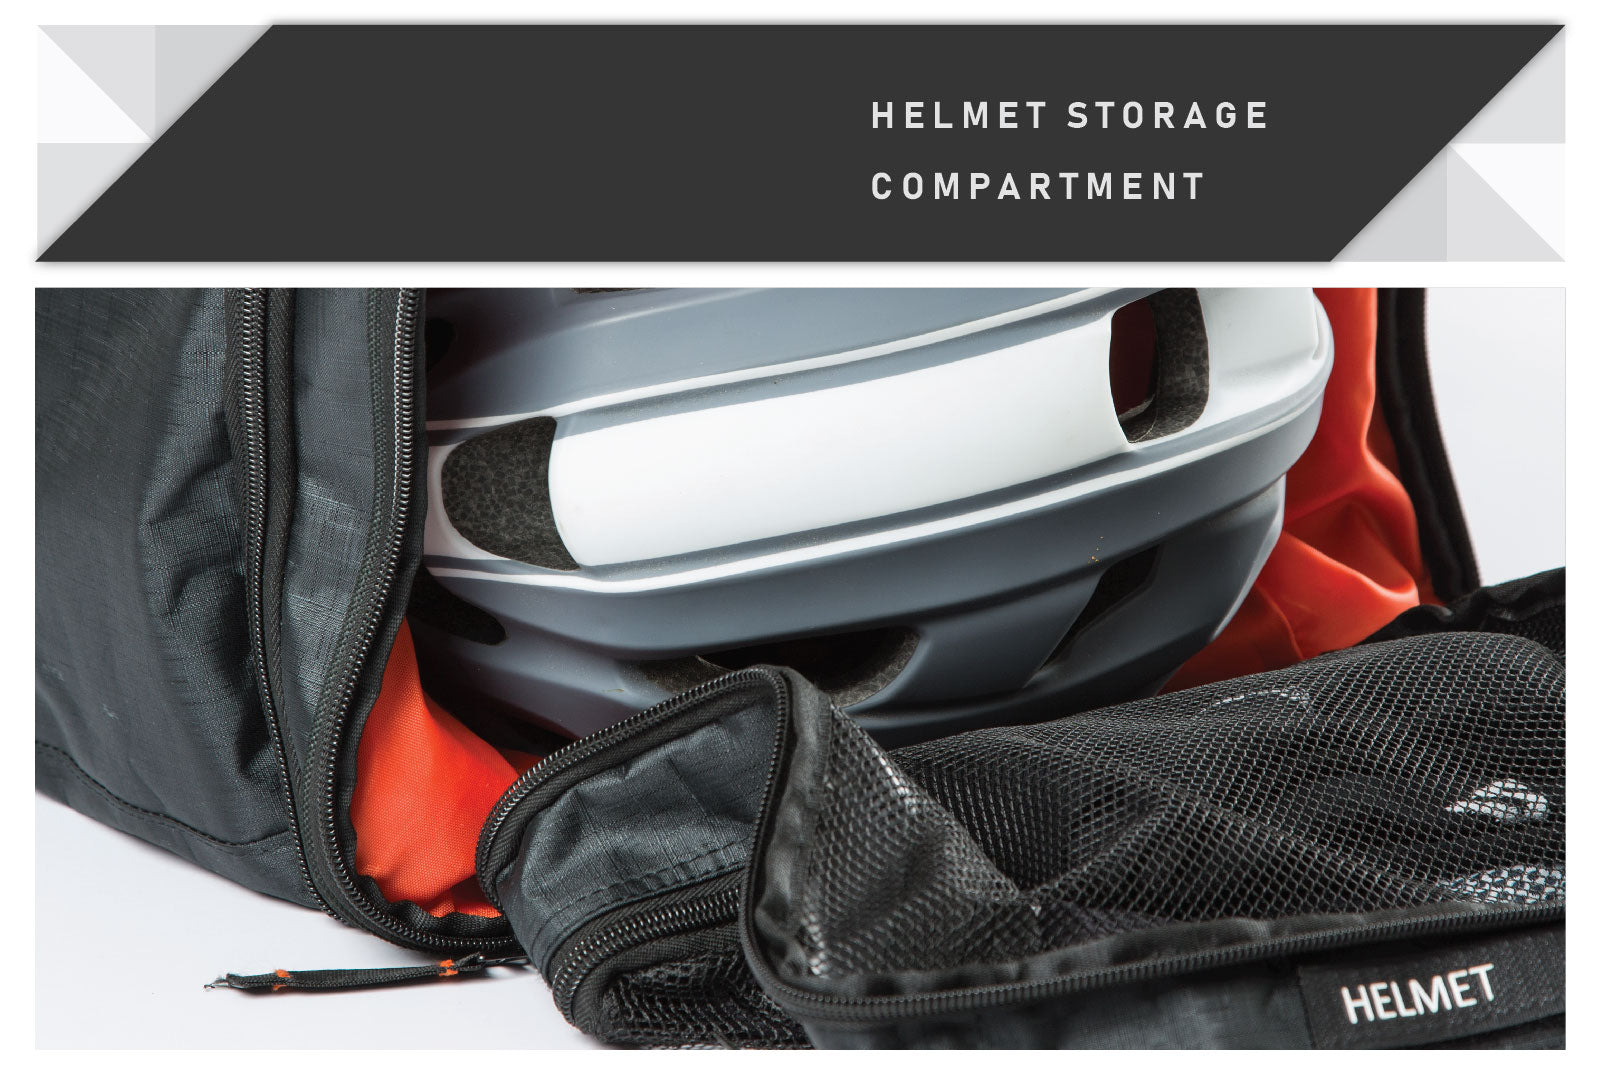 Cycling kit bag with dedicated helmet storage